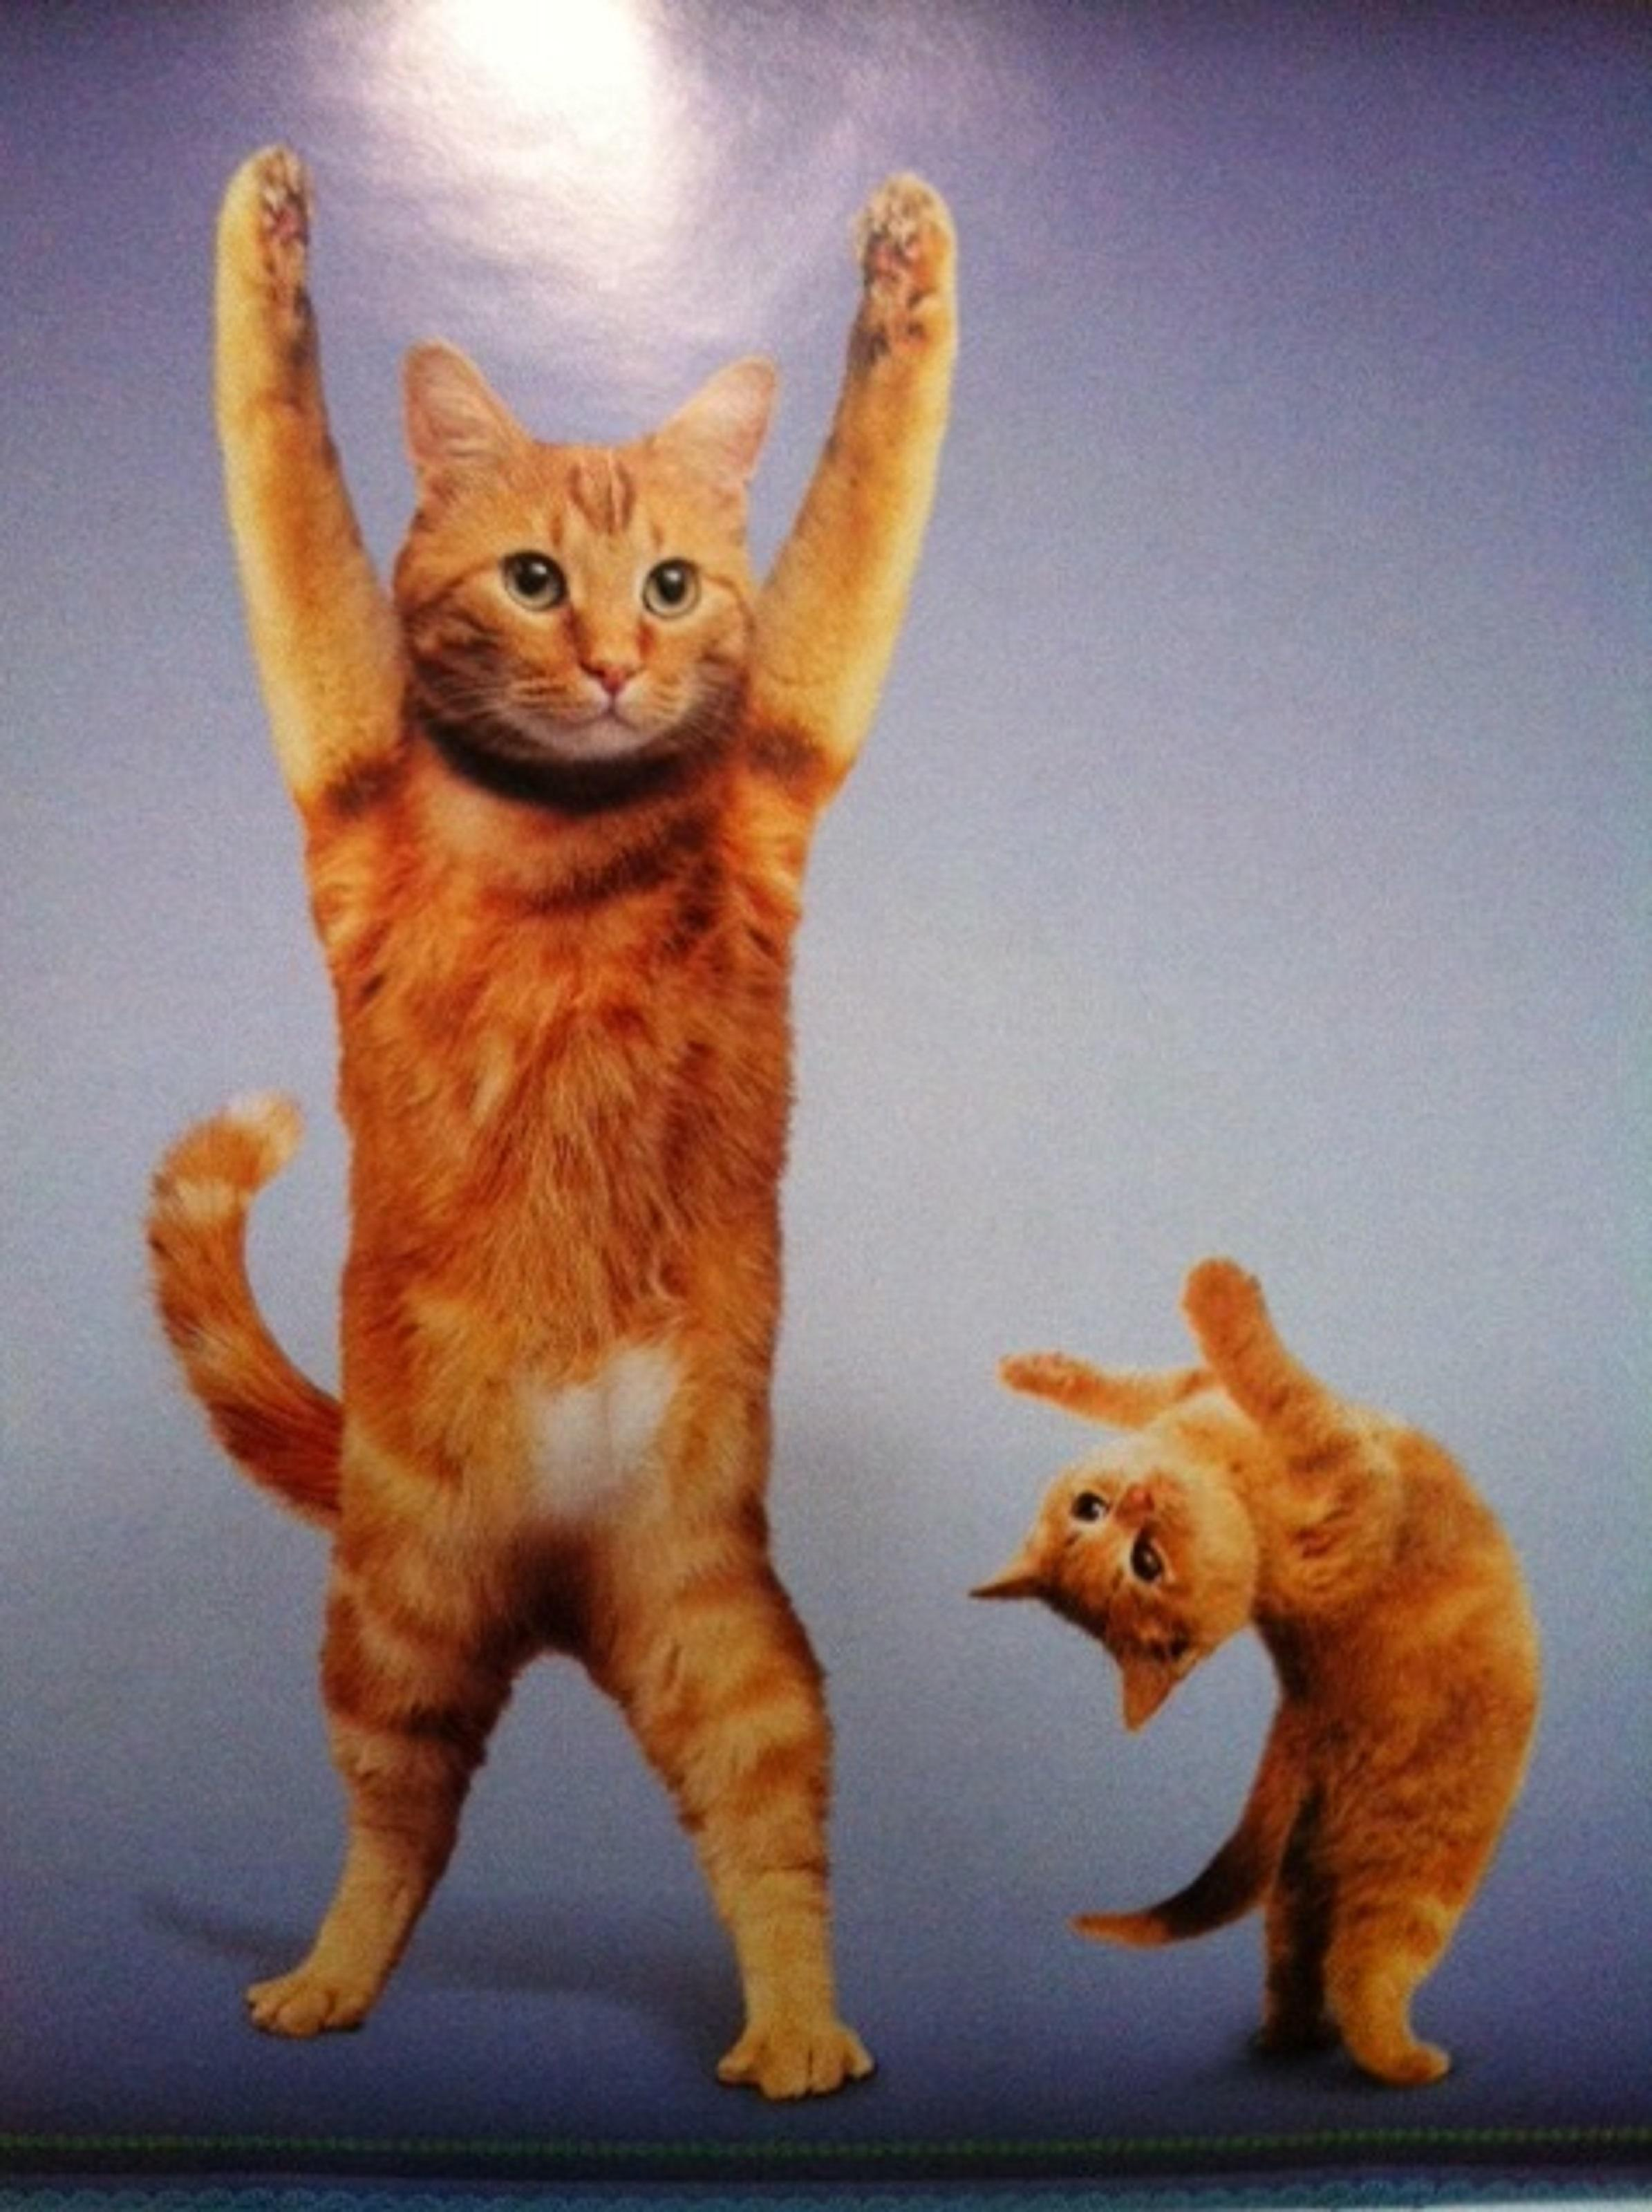 Funny Cats Doing Yoga Poses